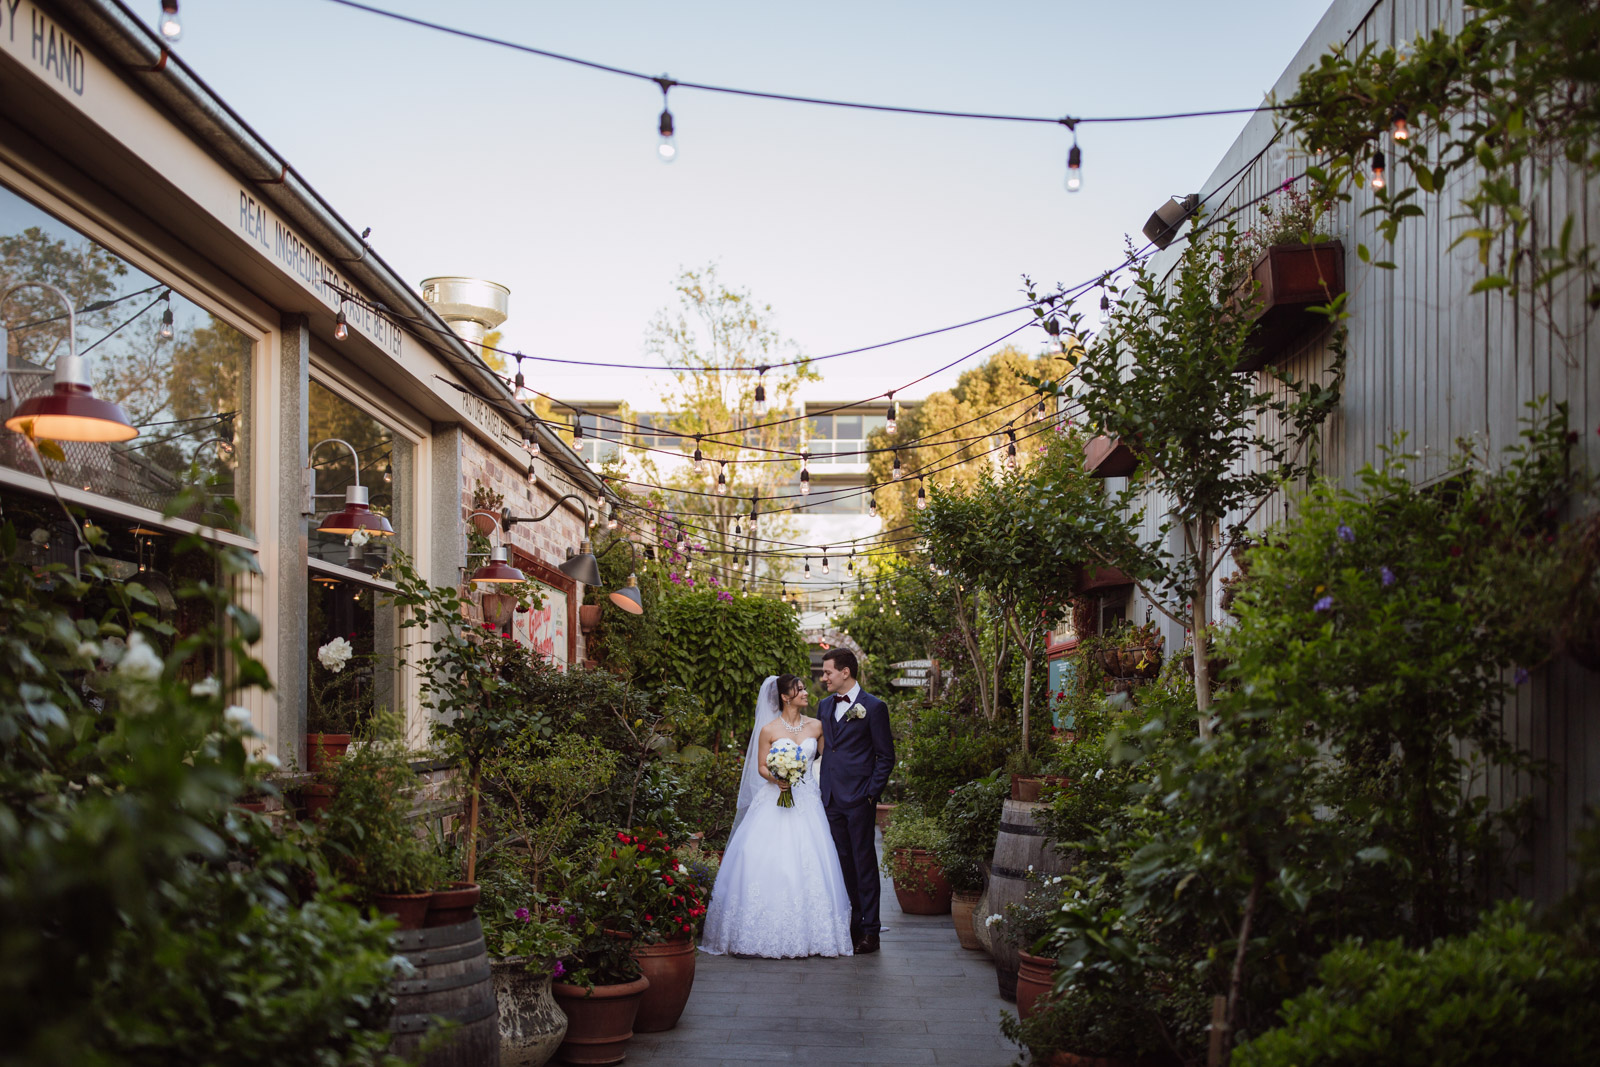 A man and woman on their wedding day in a narrow alley lined with a lot of pot plants. Light bulbs hang from power lines strung across the two buildings on either side. The man and woman are looking at each other and smiling. The woman is wearing a white strapless ballgown and a white veil, and is holding a bouquet of ivory and blue flowers. The man is wearing a navy blue suit